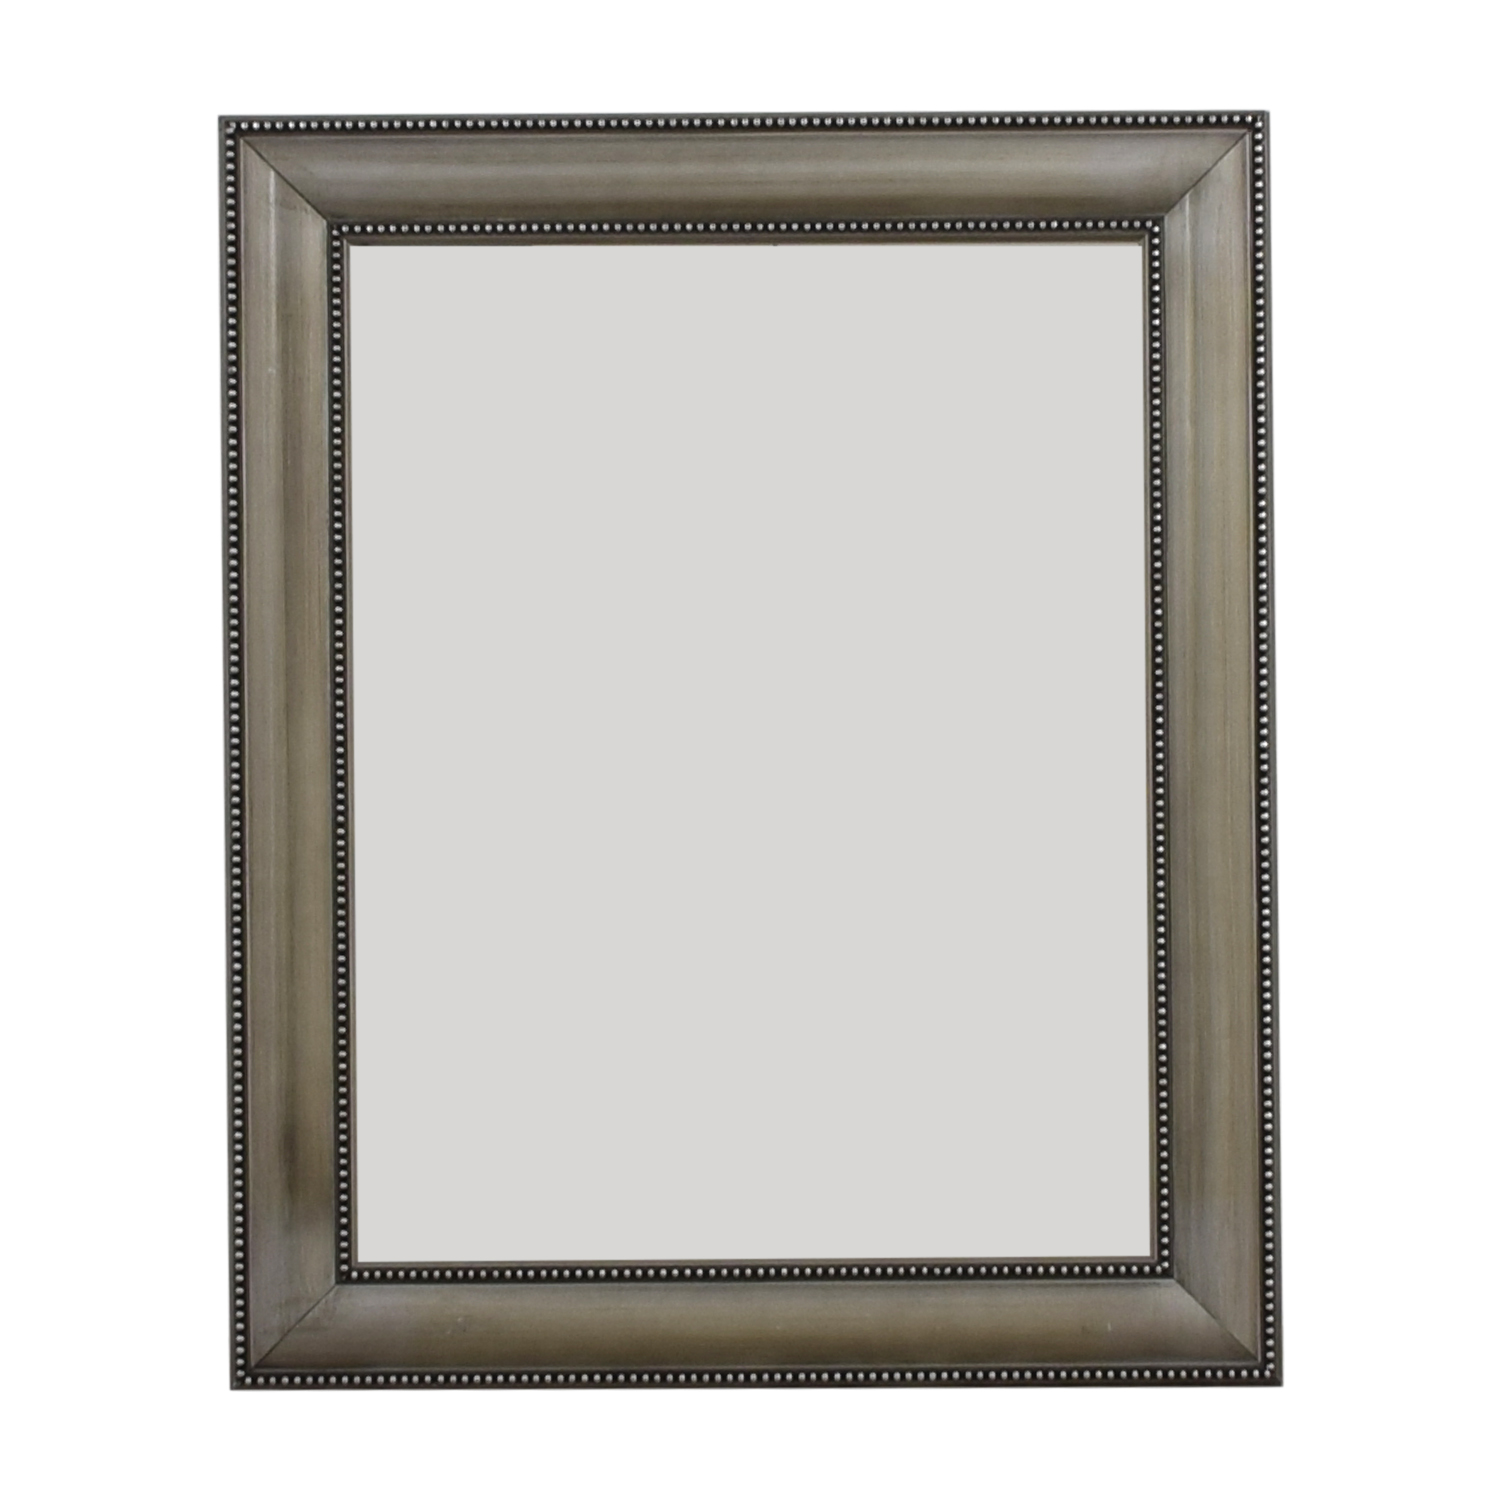 Silver Framed Mirror sale